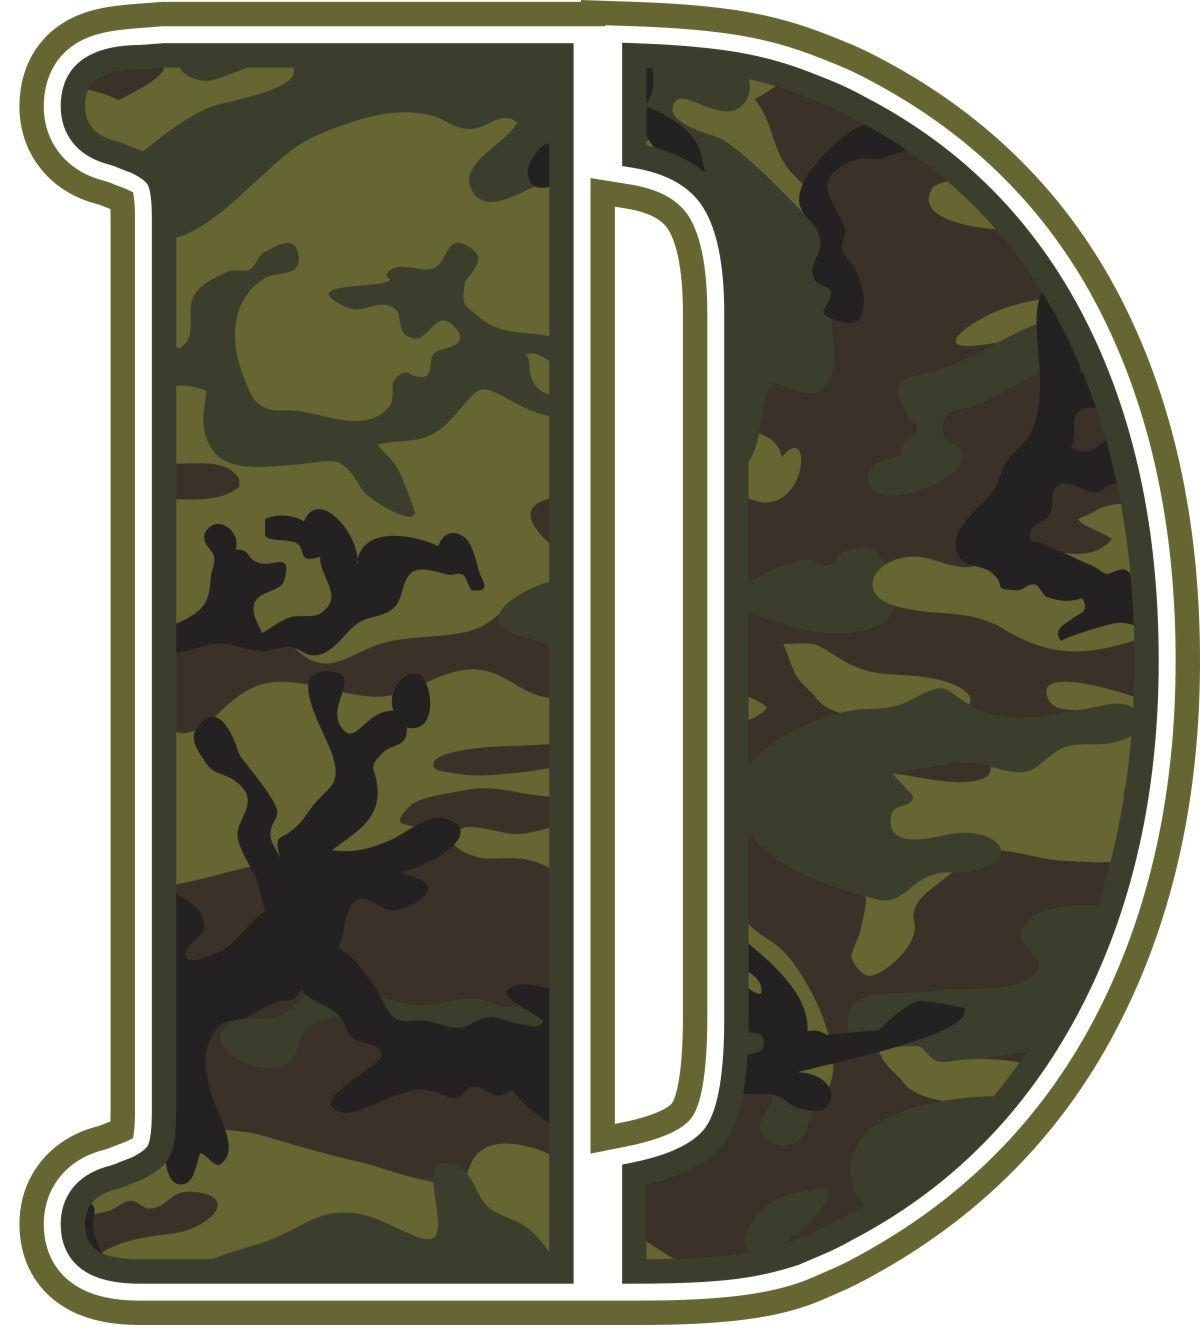 Green Camo Wall Letters | Potty Training Concepts Throughout Camouflage Wall Art (Image 11 of 20)